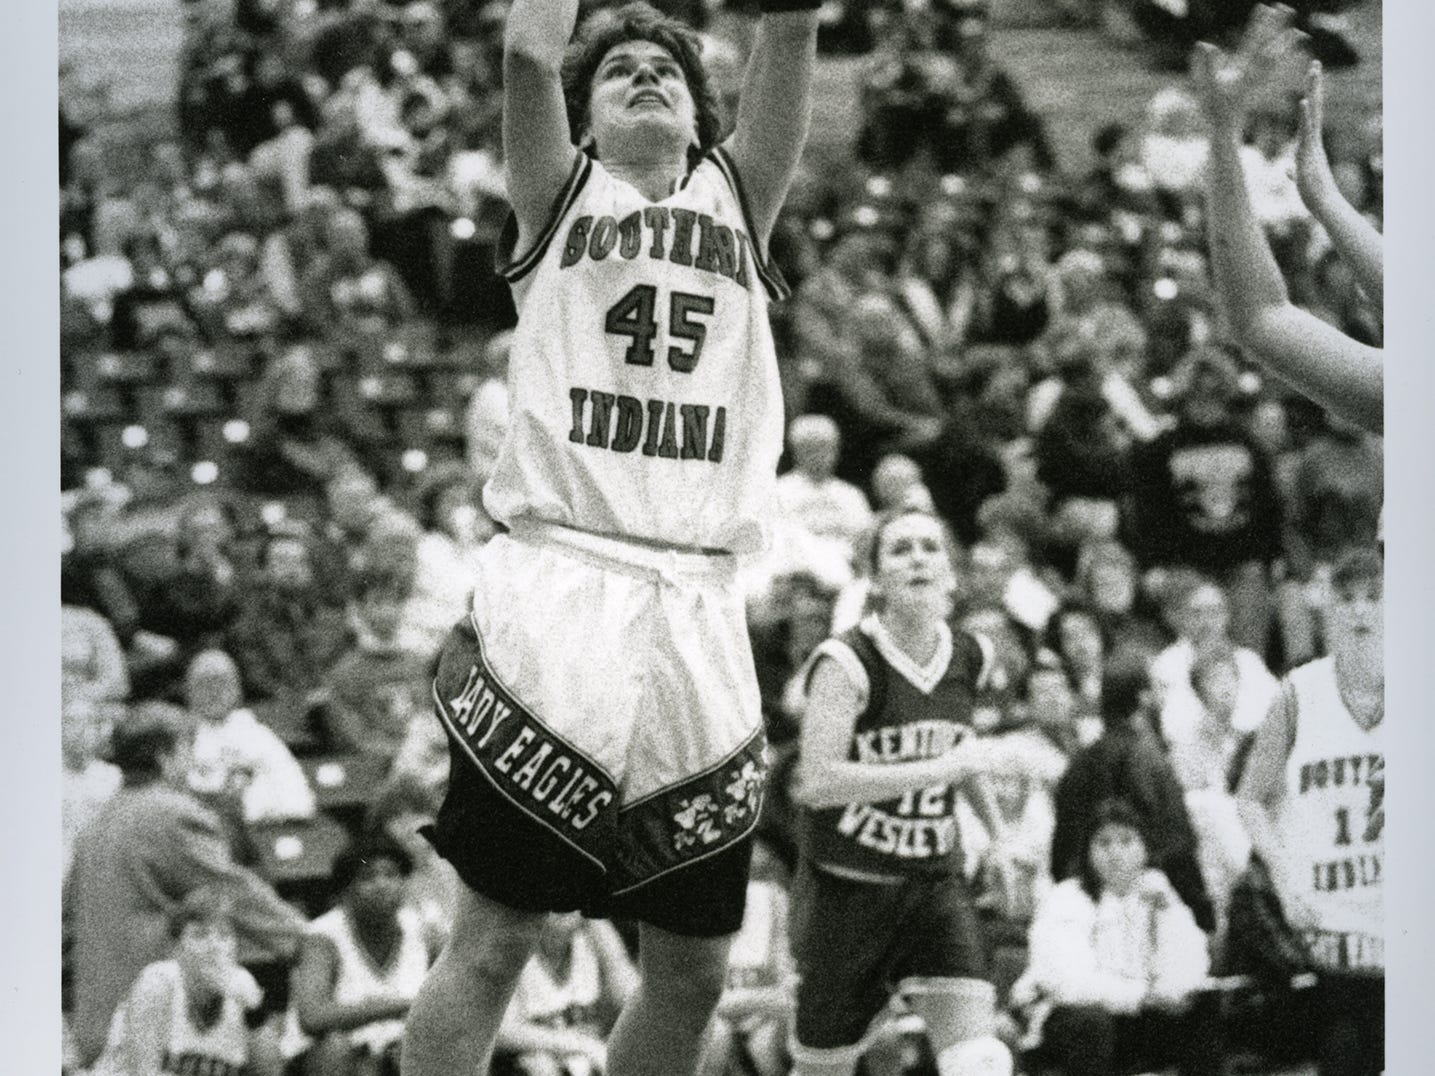 Eileen Weber puts up a shot during her playing days at the University of Southern Indiana.